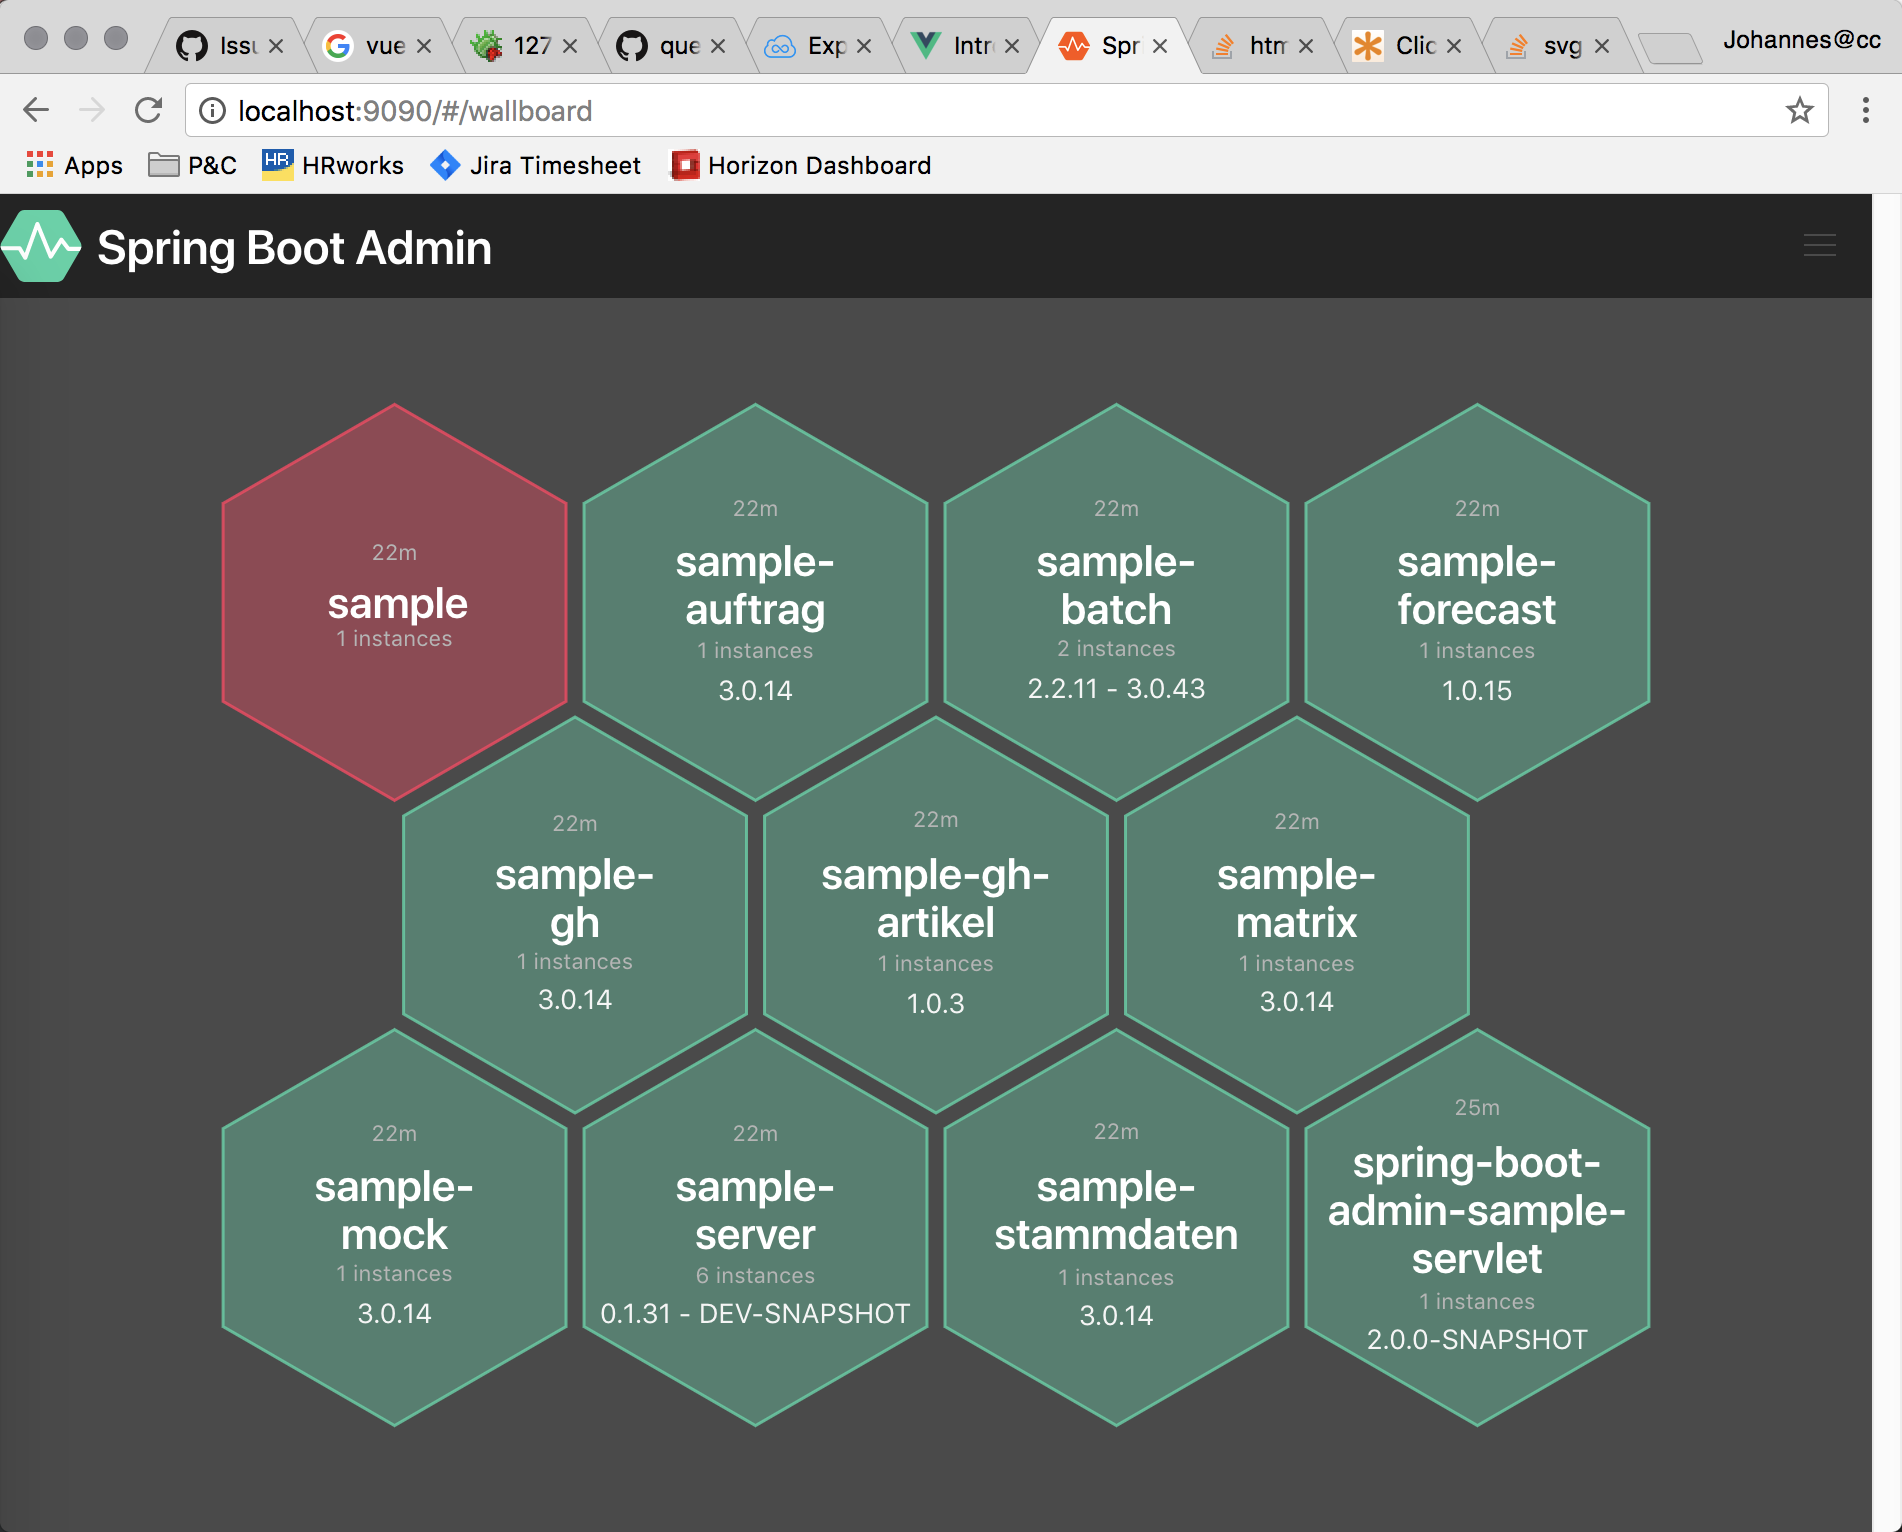 Wallboard view · Issue #313 · codecentric/spring-boot-admin